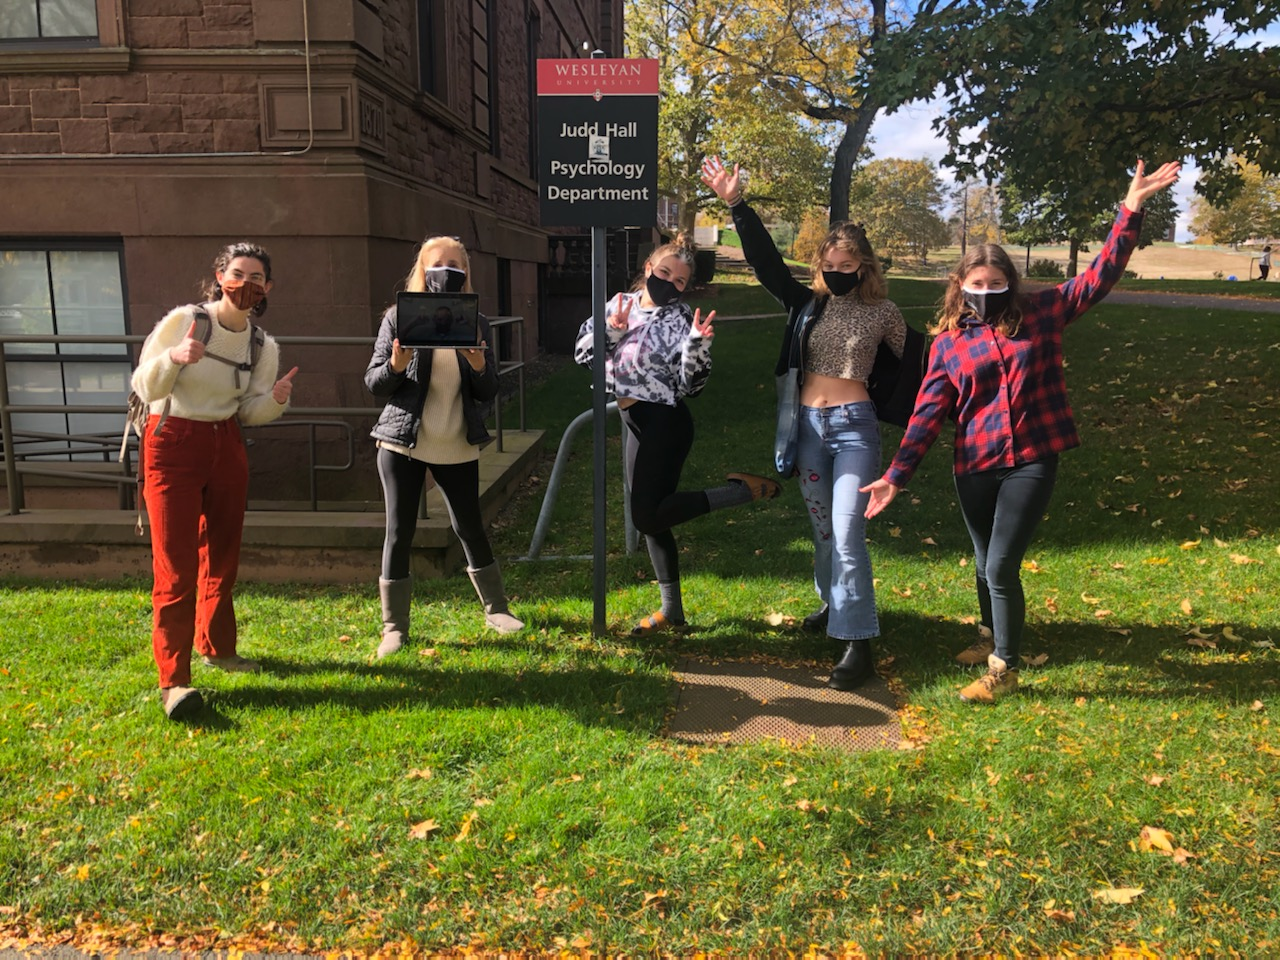 On Oct. 27 and Nov. 5, more than 100 students participated in an on-campus Psychological Scavenger Hunt created by Steve Stemler, associate professor of psychology, and Sarah Carney, assistant professor of the practice in psychology. Carney, pictured second from left, spoke with Stemler through Zoom during the event.